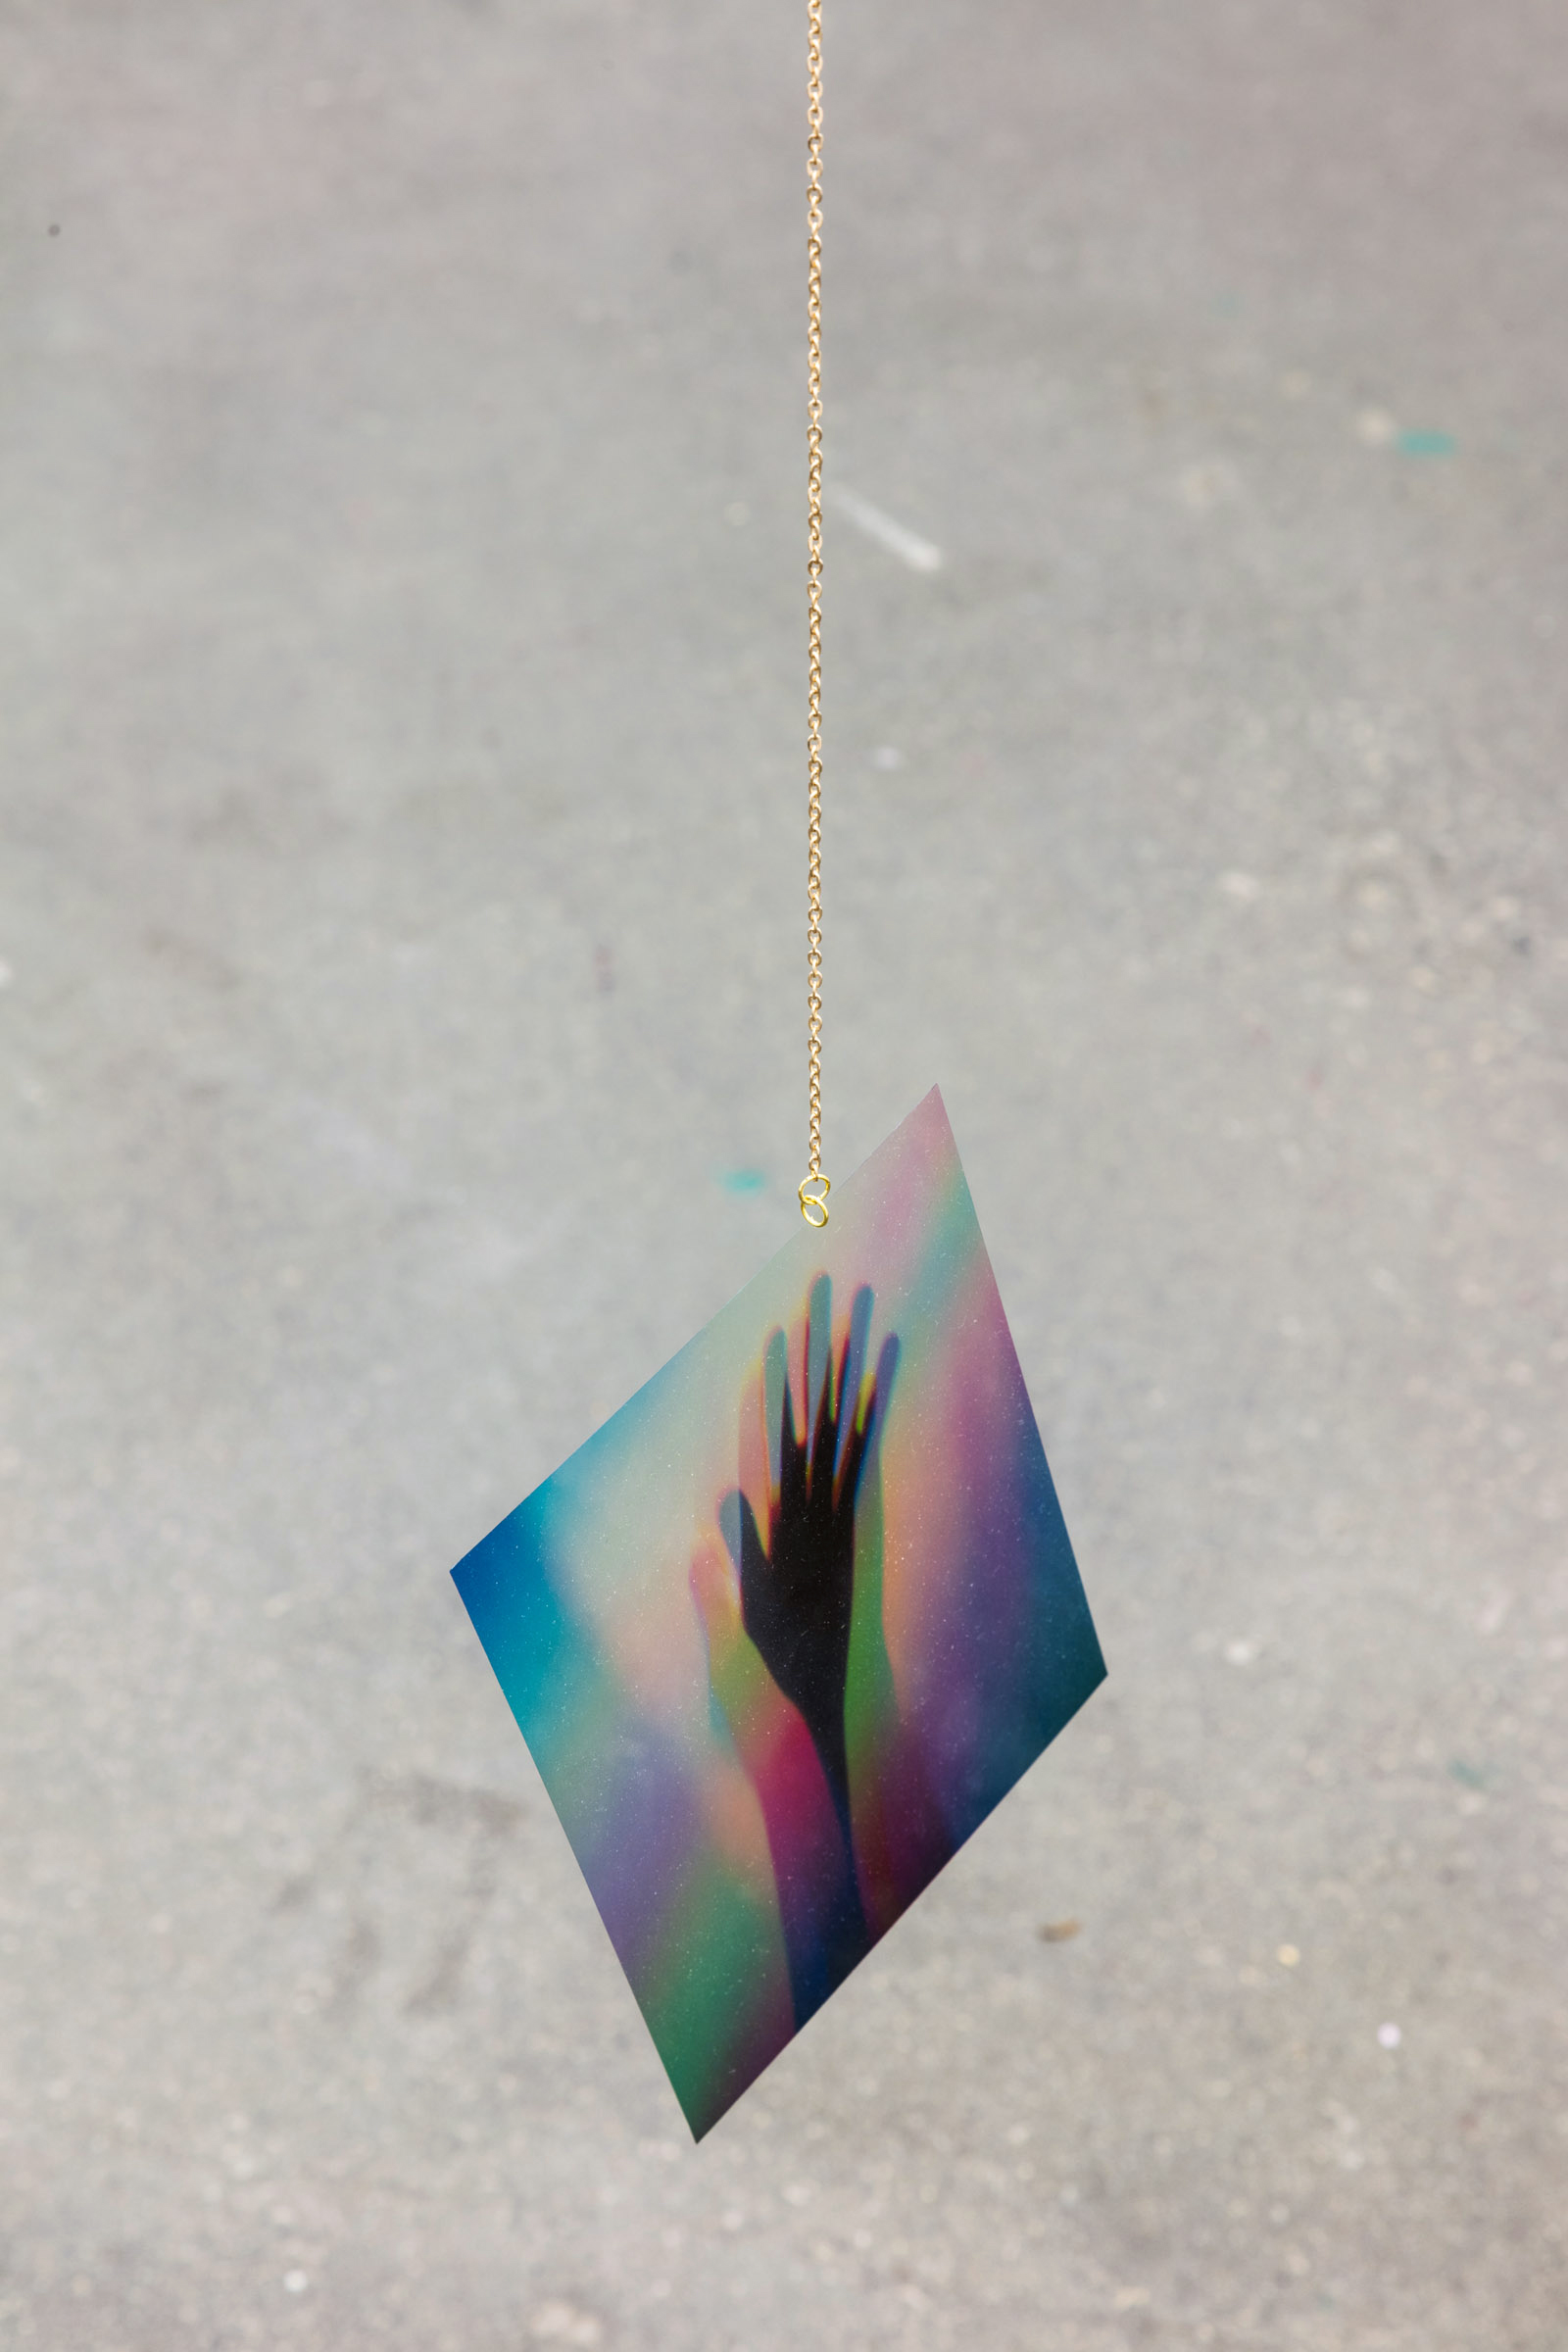 <i>Love is Gravity</i><br>2019-20<br>Colour transparencies, netting and gold chain <br>Dimensions variable